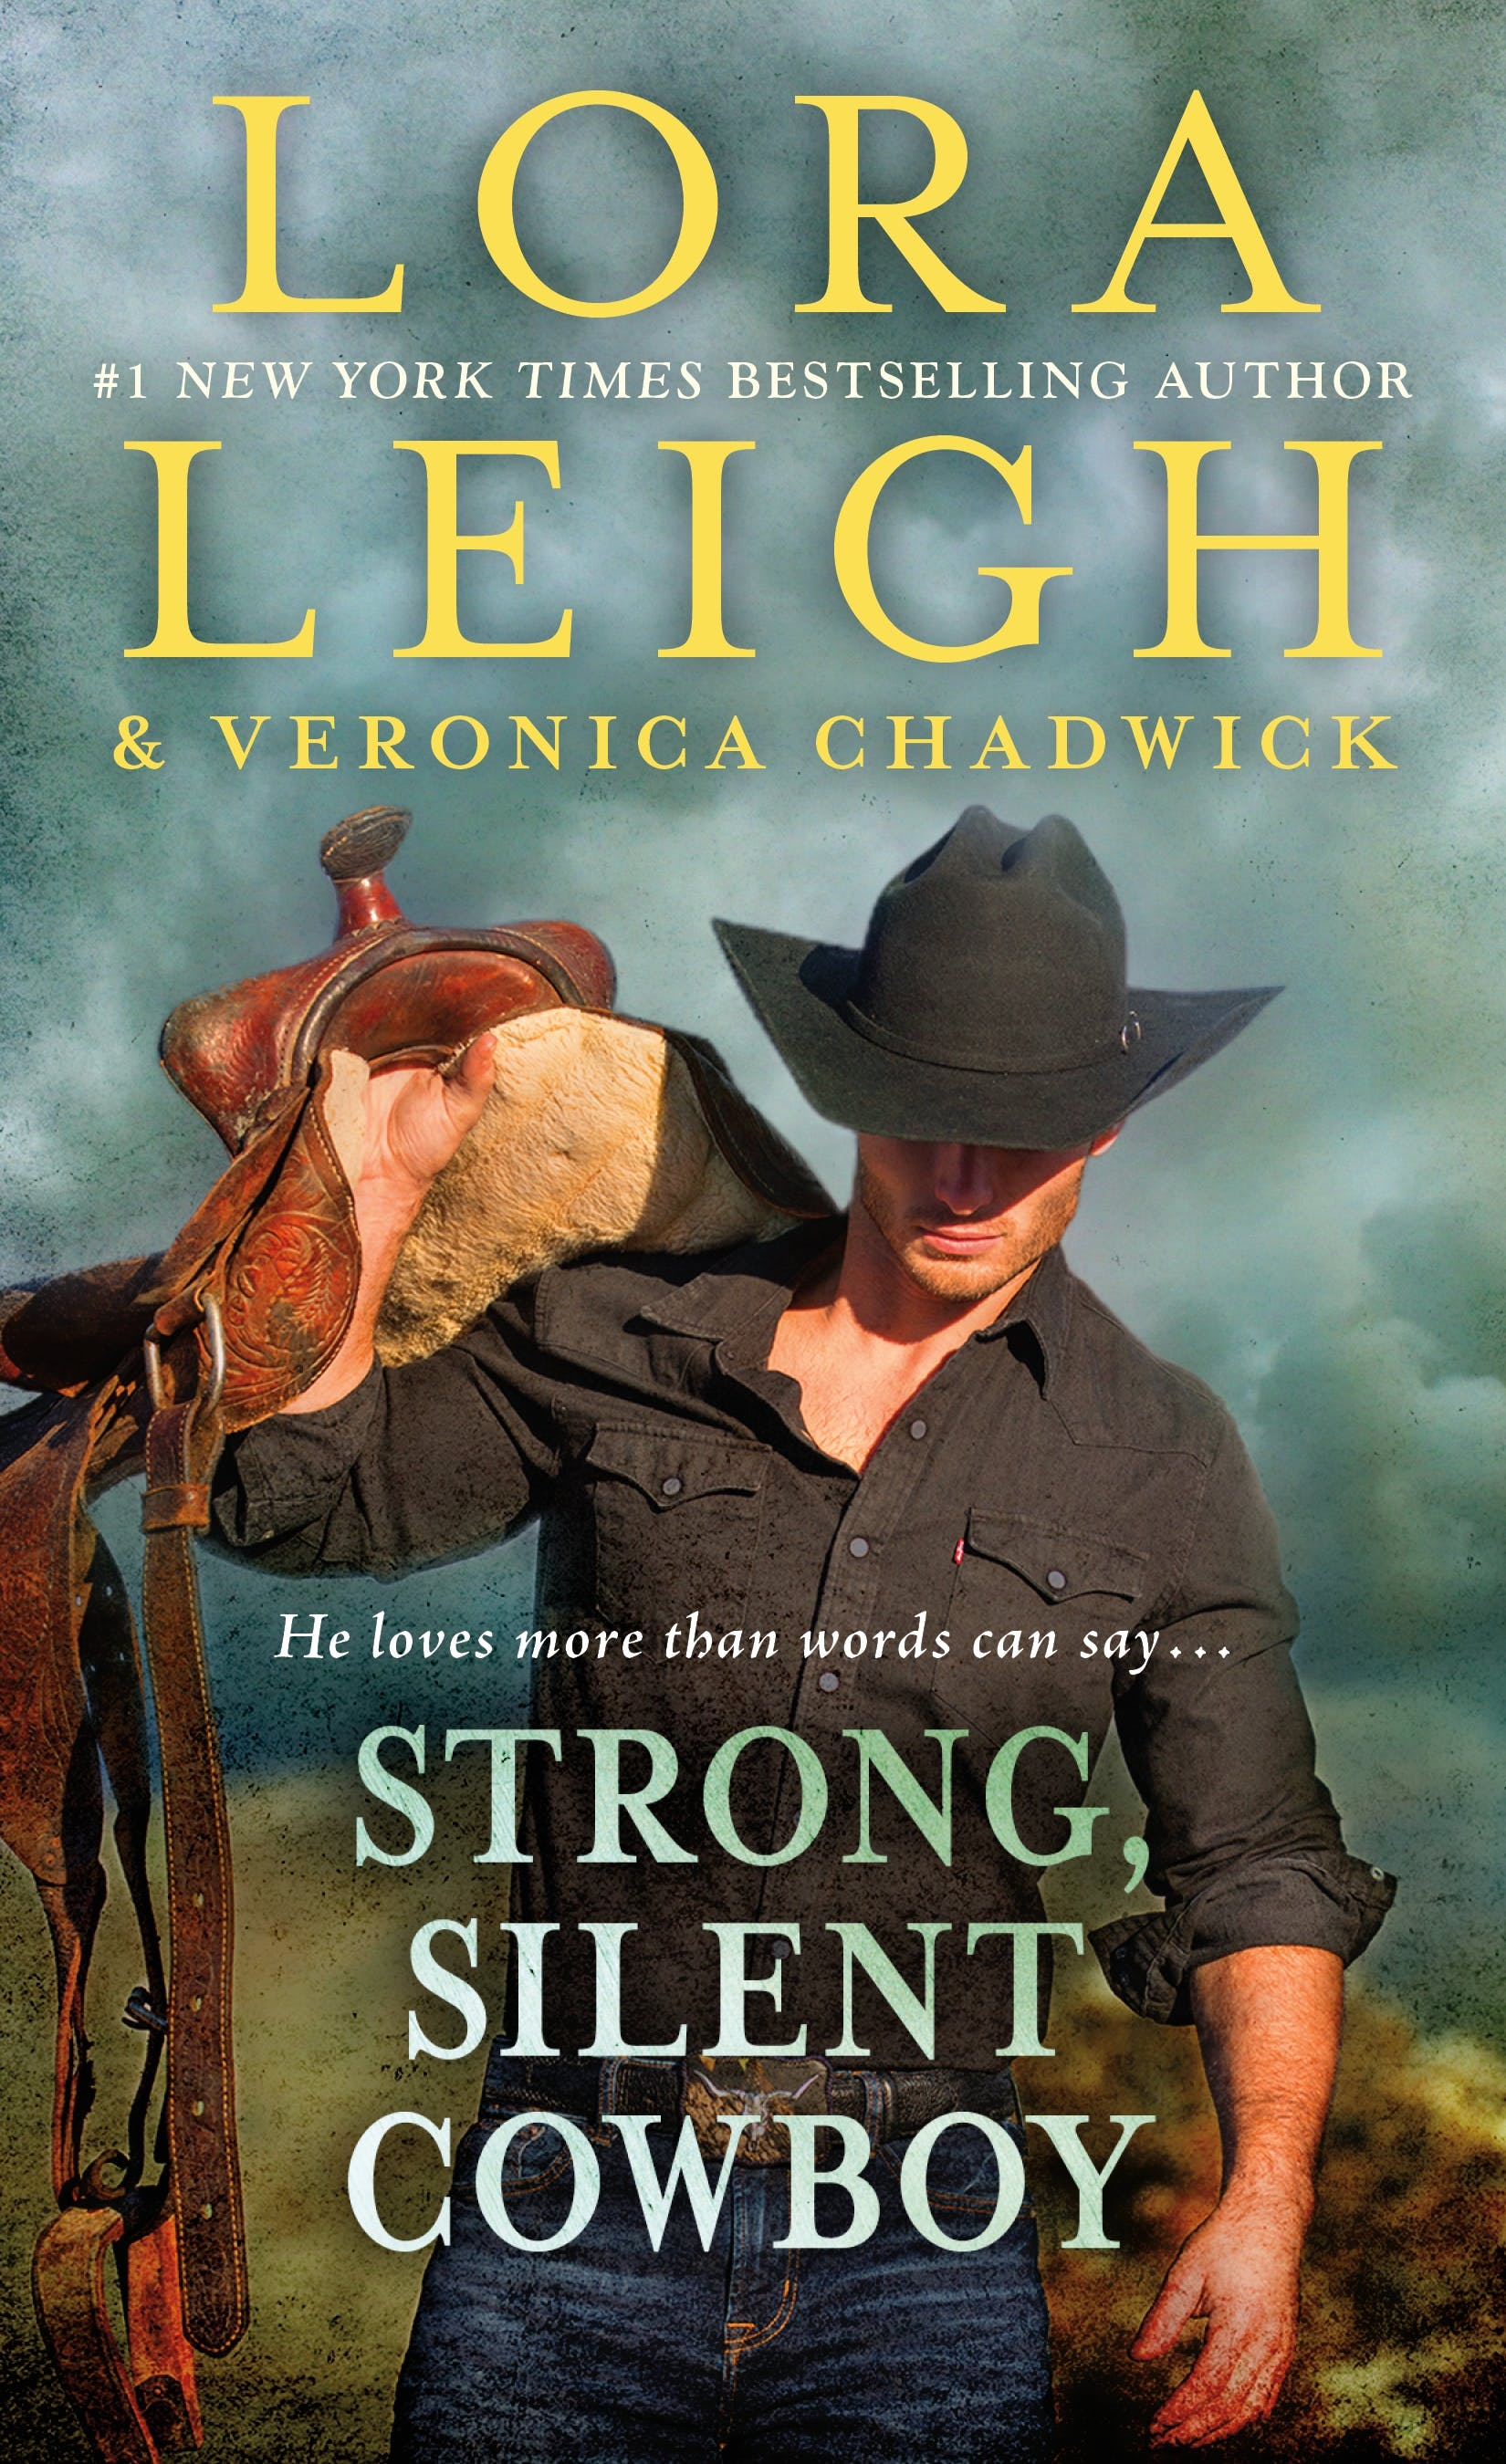 Image of Strong, Silent Cowboy